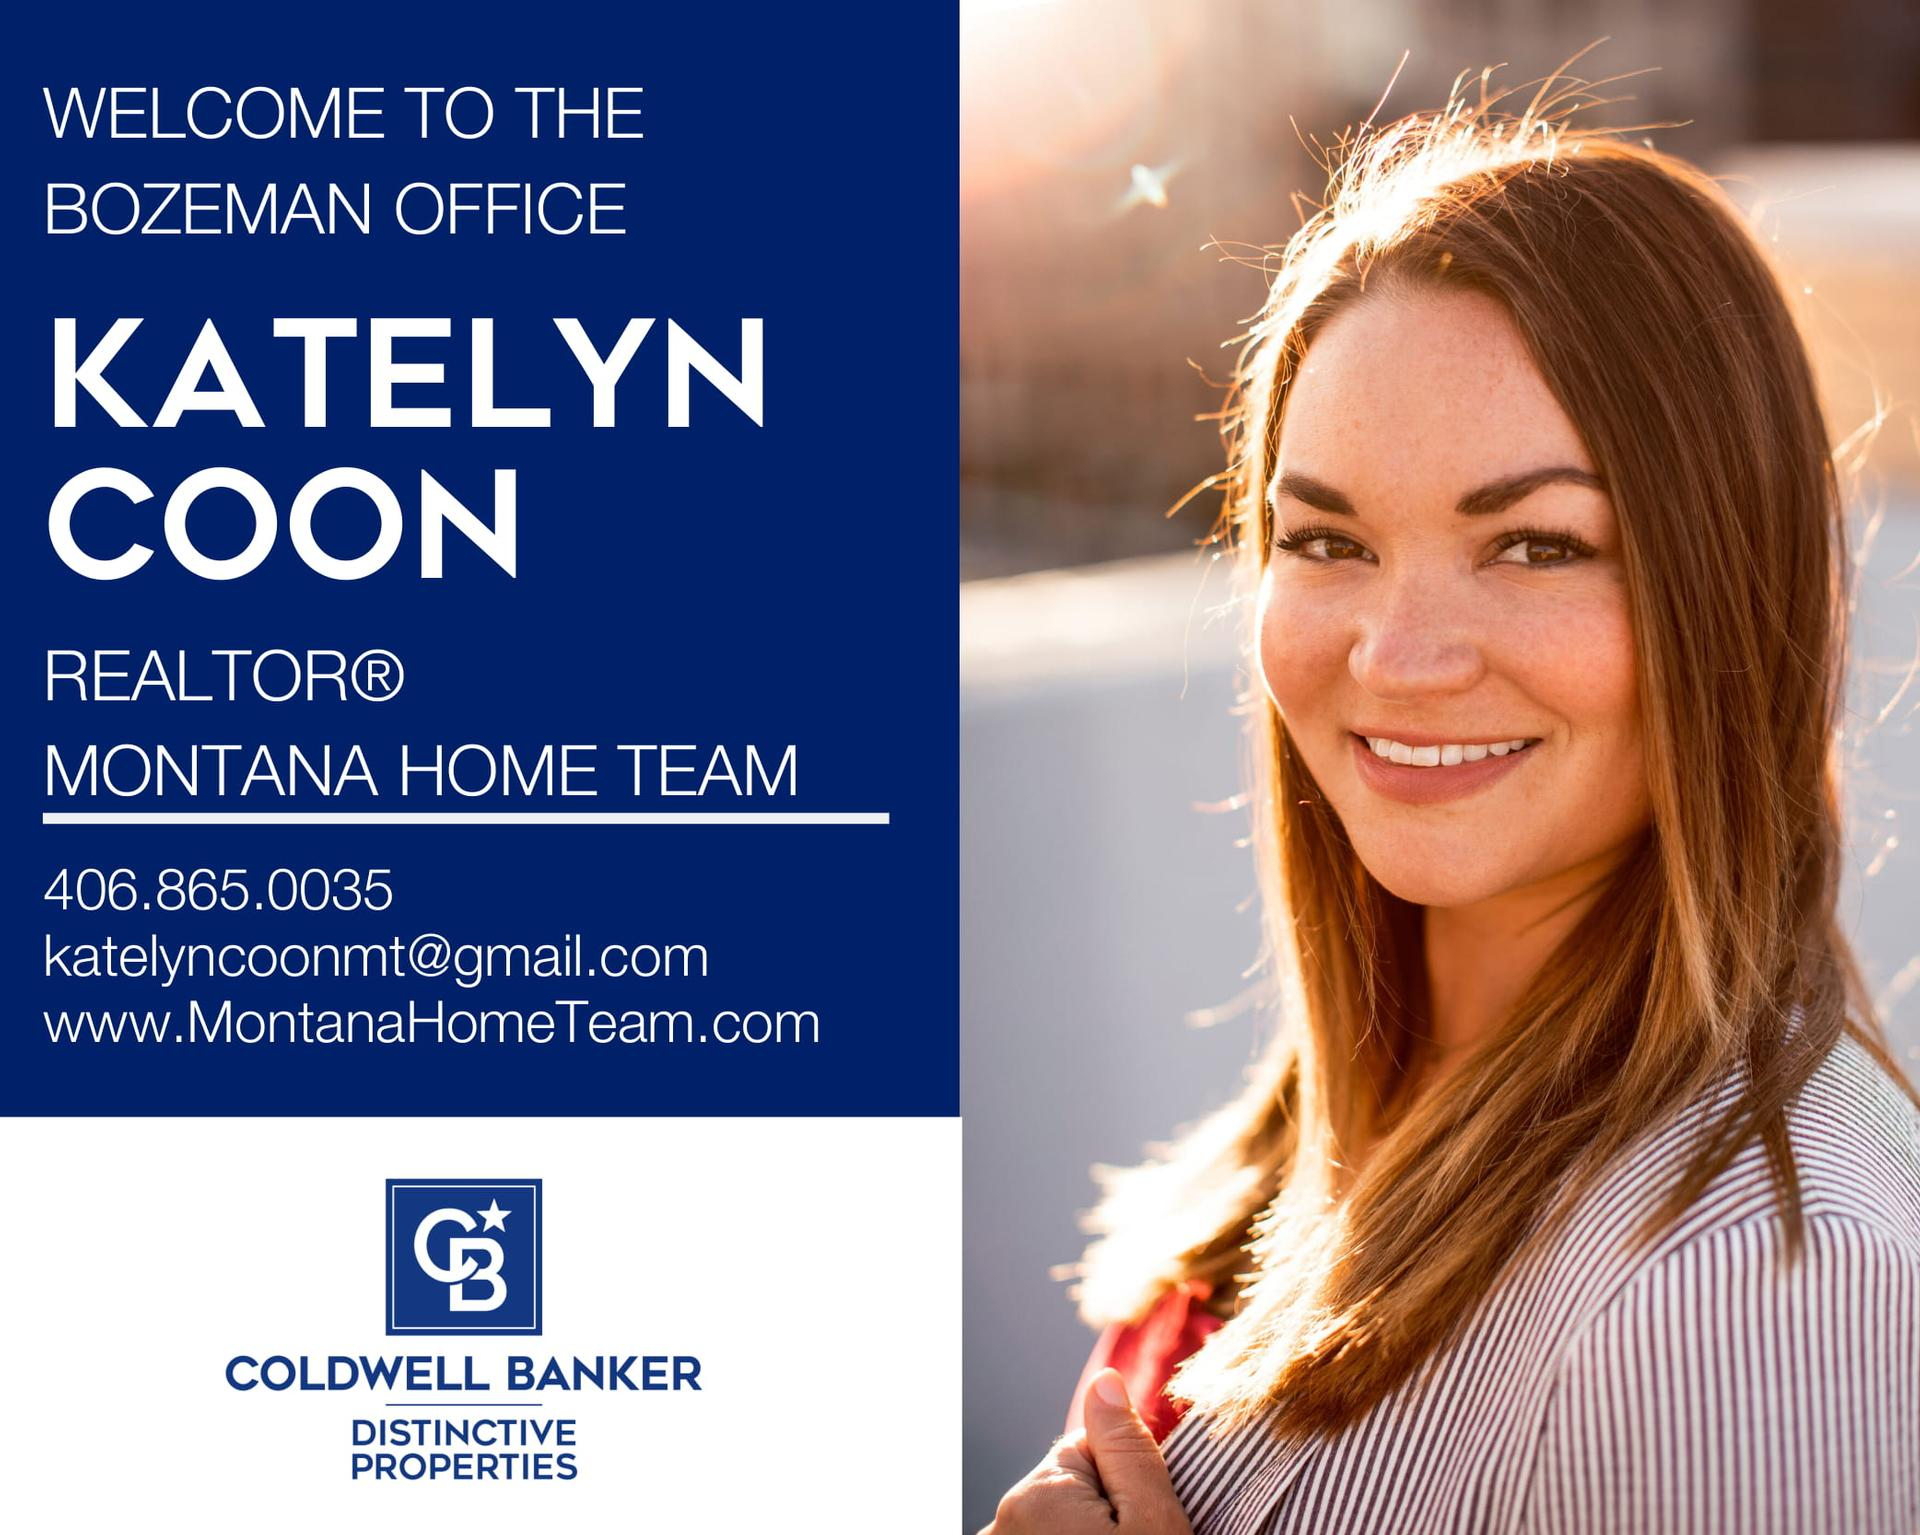 Please help us welcome Katelyn Coon to our Coldwell Banker family! Main Photo